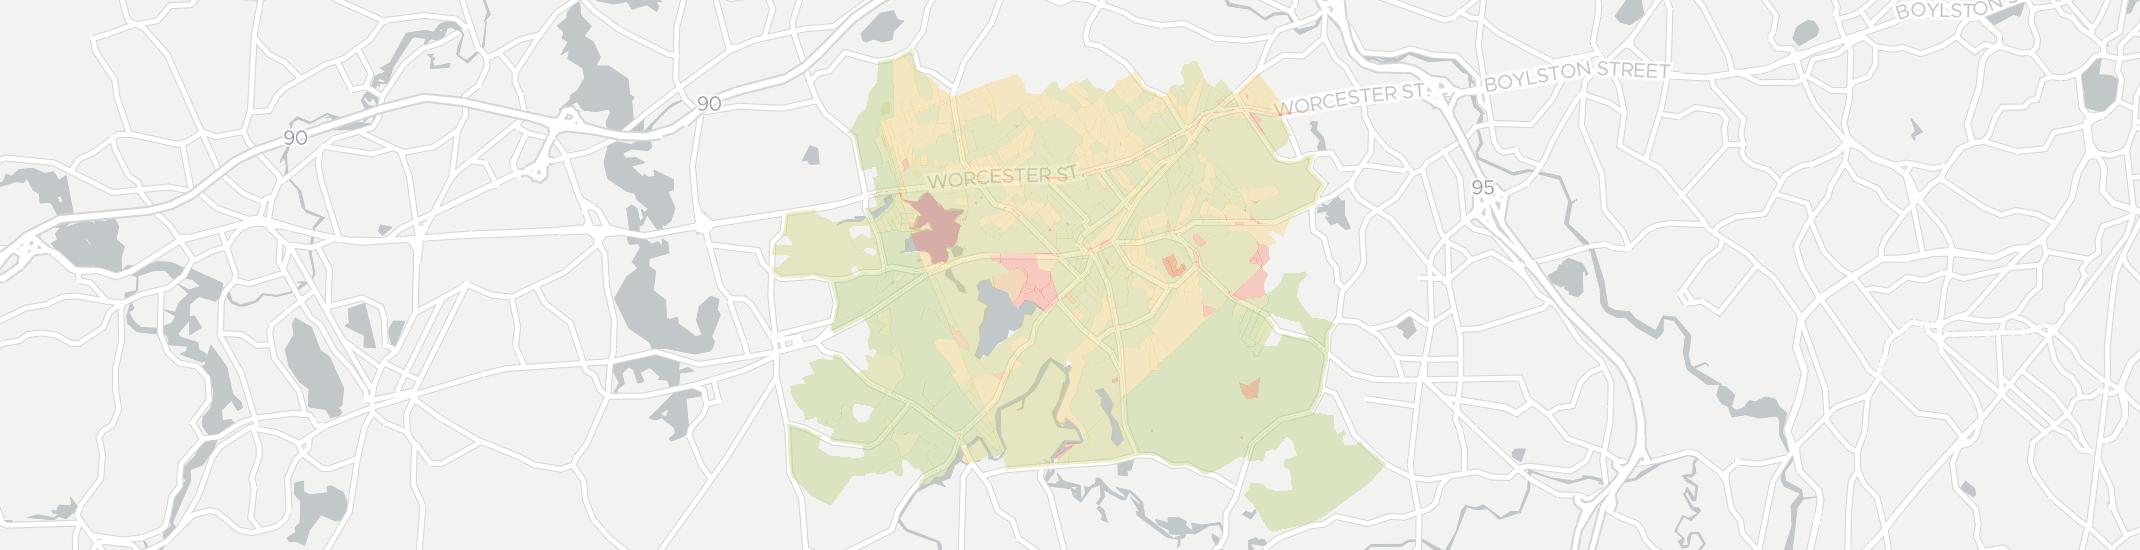 Wellesley Internet Competition Map. Click for interactive map.